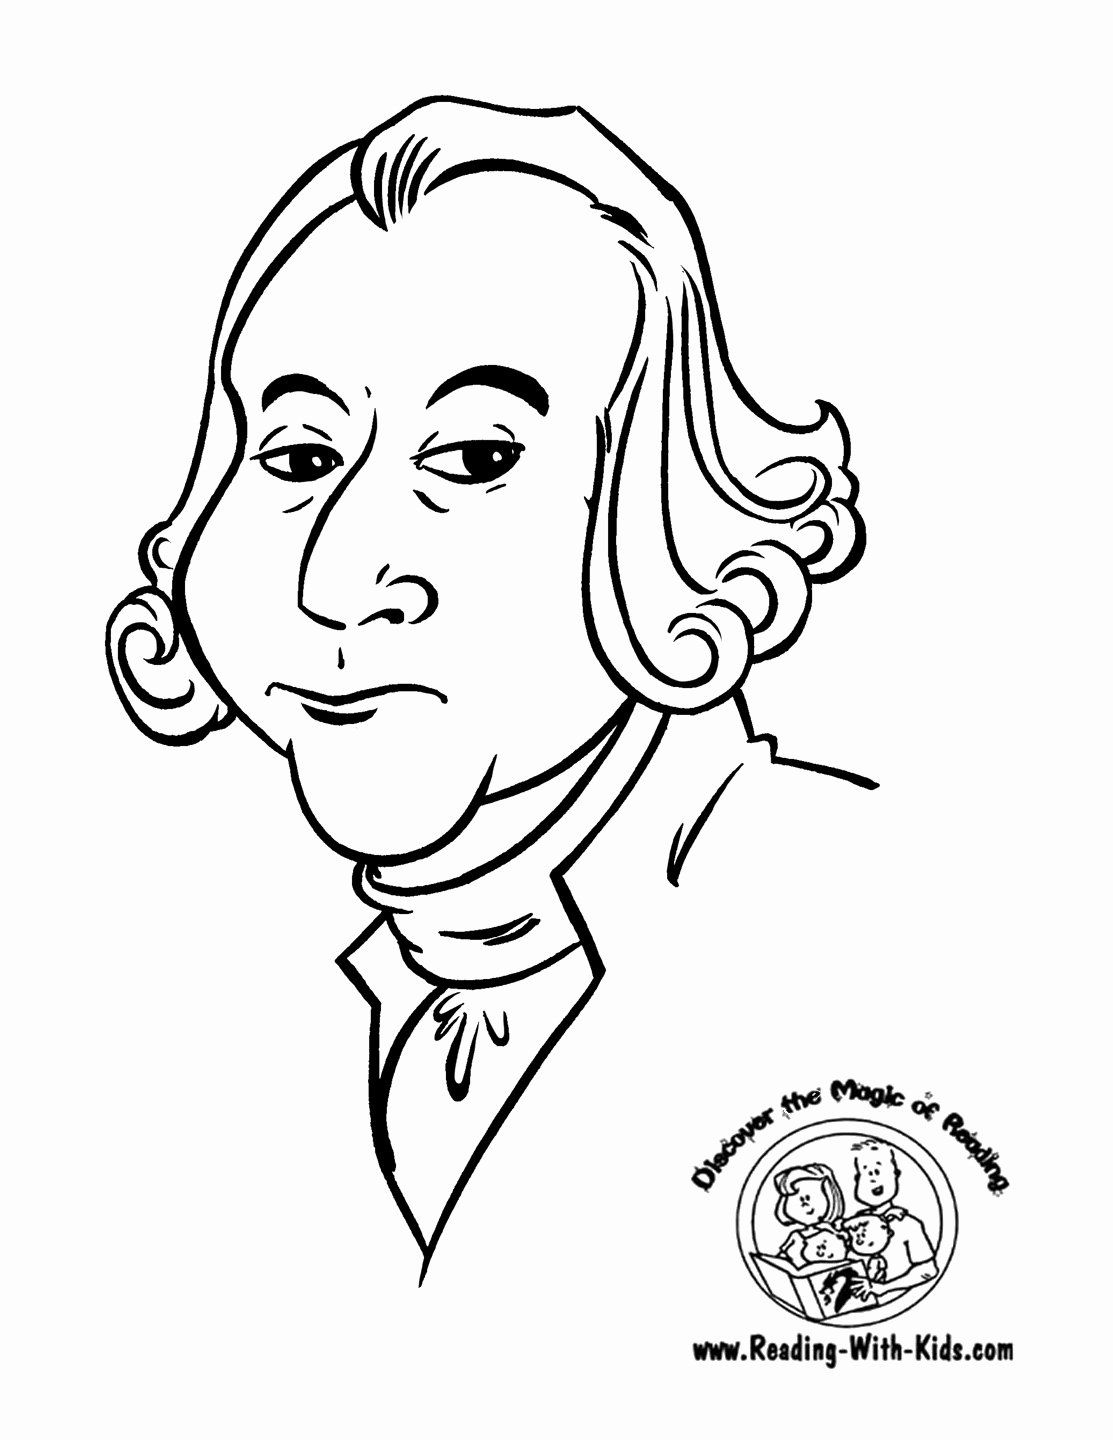 George Washington Carver Coloring Page Unique George Washington Carver Coloring Page Parumi George Washington Images Coloring Pages Bear Coloring Pages